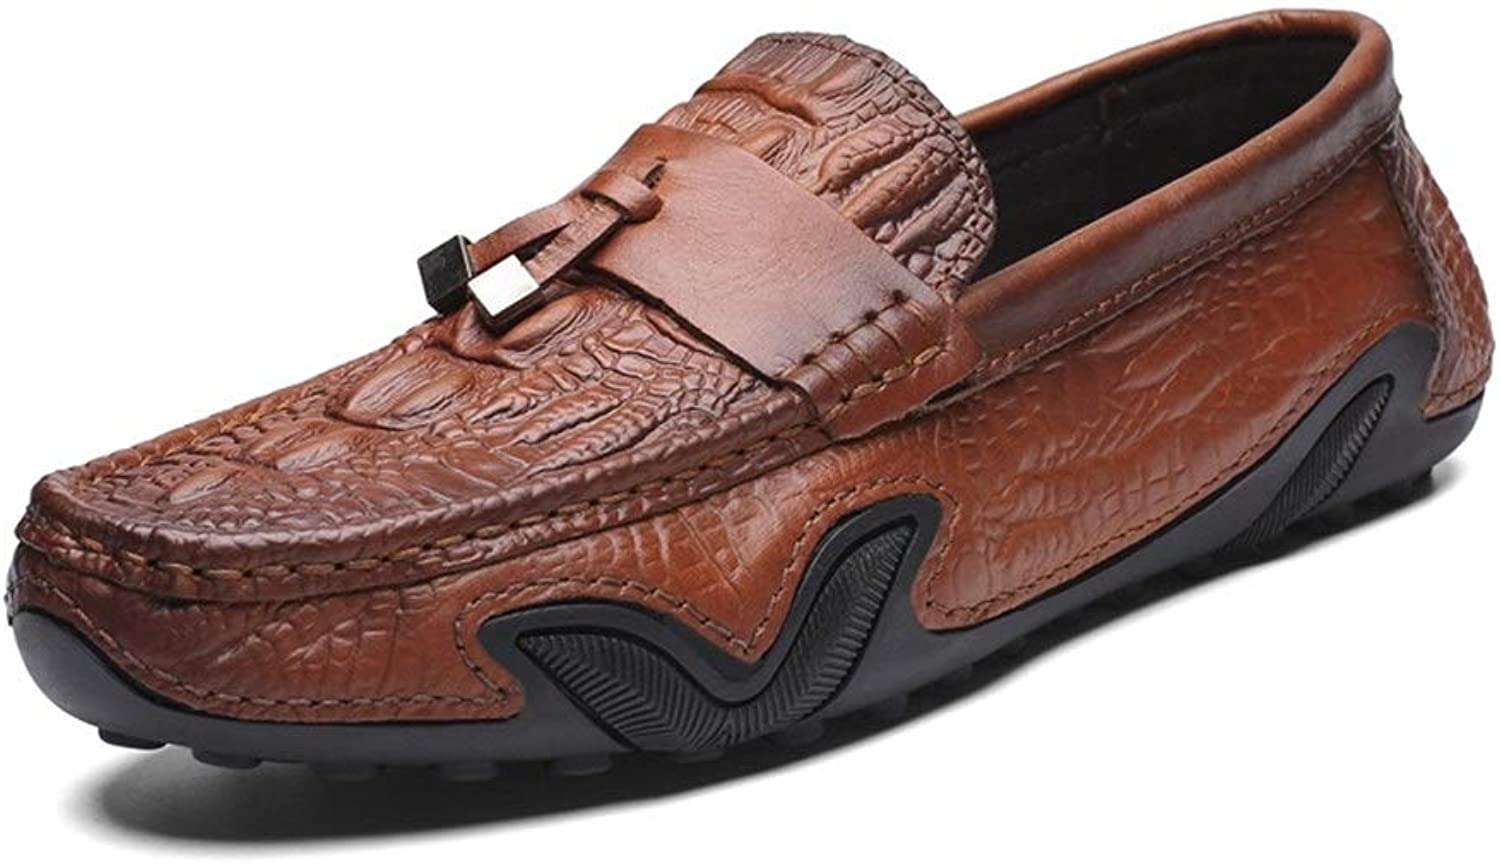 Driving Loafers for Men Leisure Oxfords with Front Tassel Casual Flat Penny shoes Embossed Leather Upper Slip On Walking Boat shoes Lightweight (color   Brown, Size   5.5 UK)